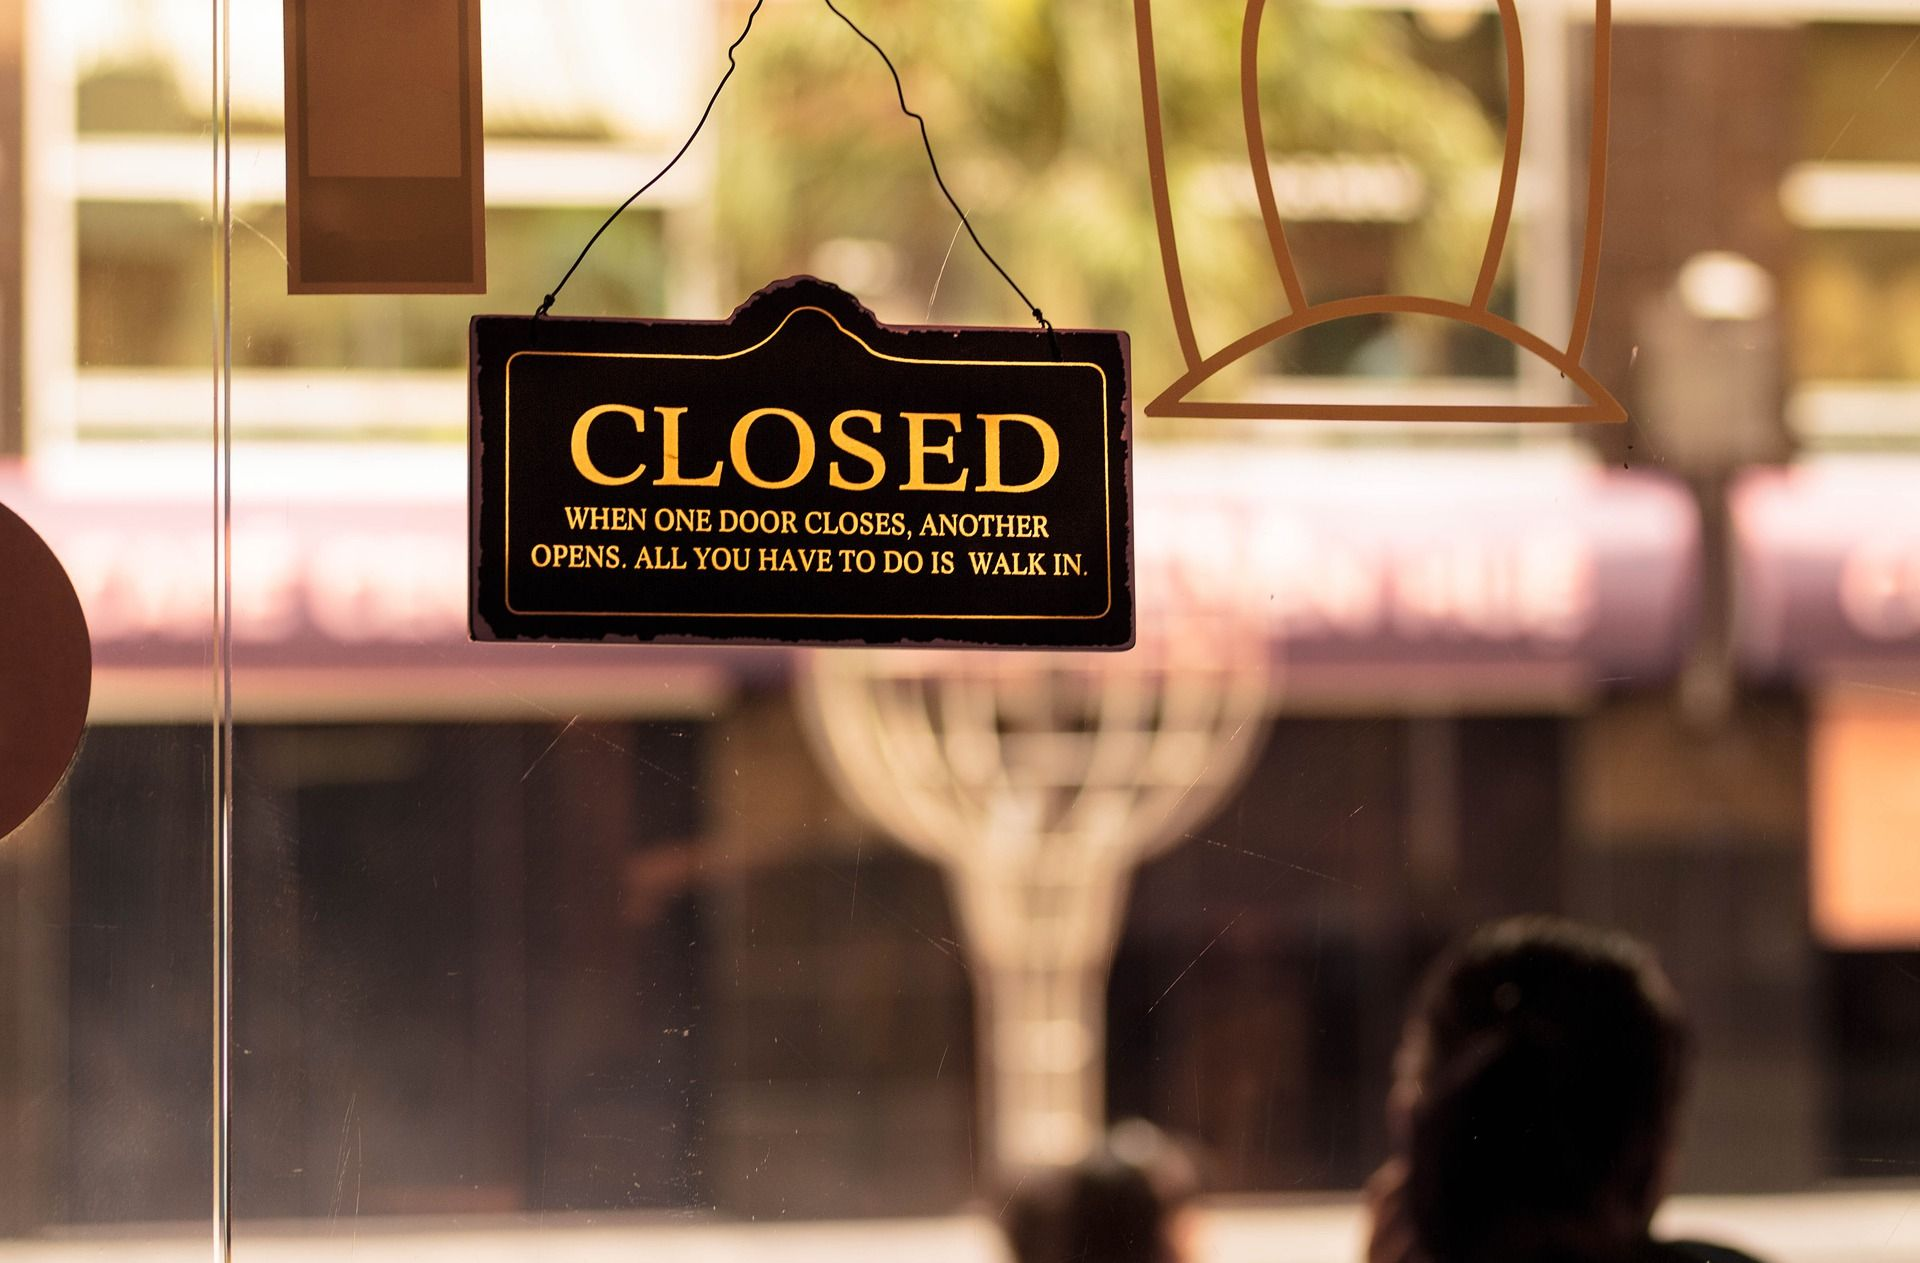 Forest House, People's Palace, Lotus Court And More: COVID-19 Has Closed F&B Favourites Around The Philippines